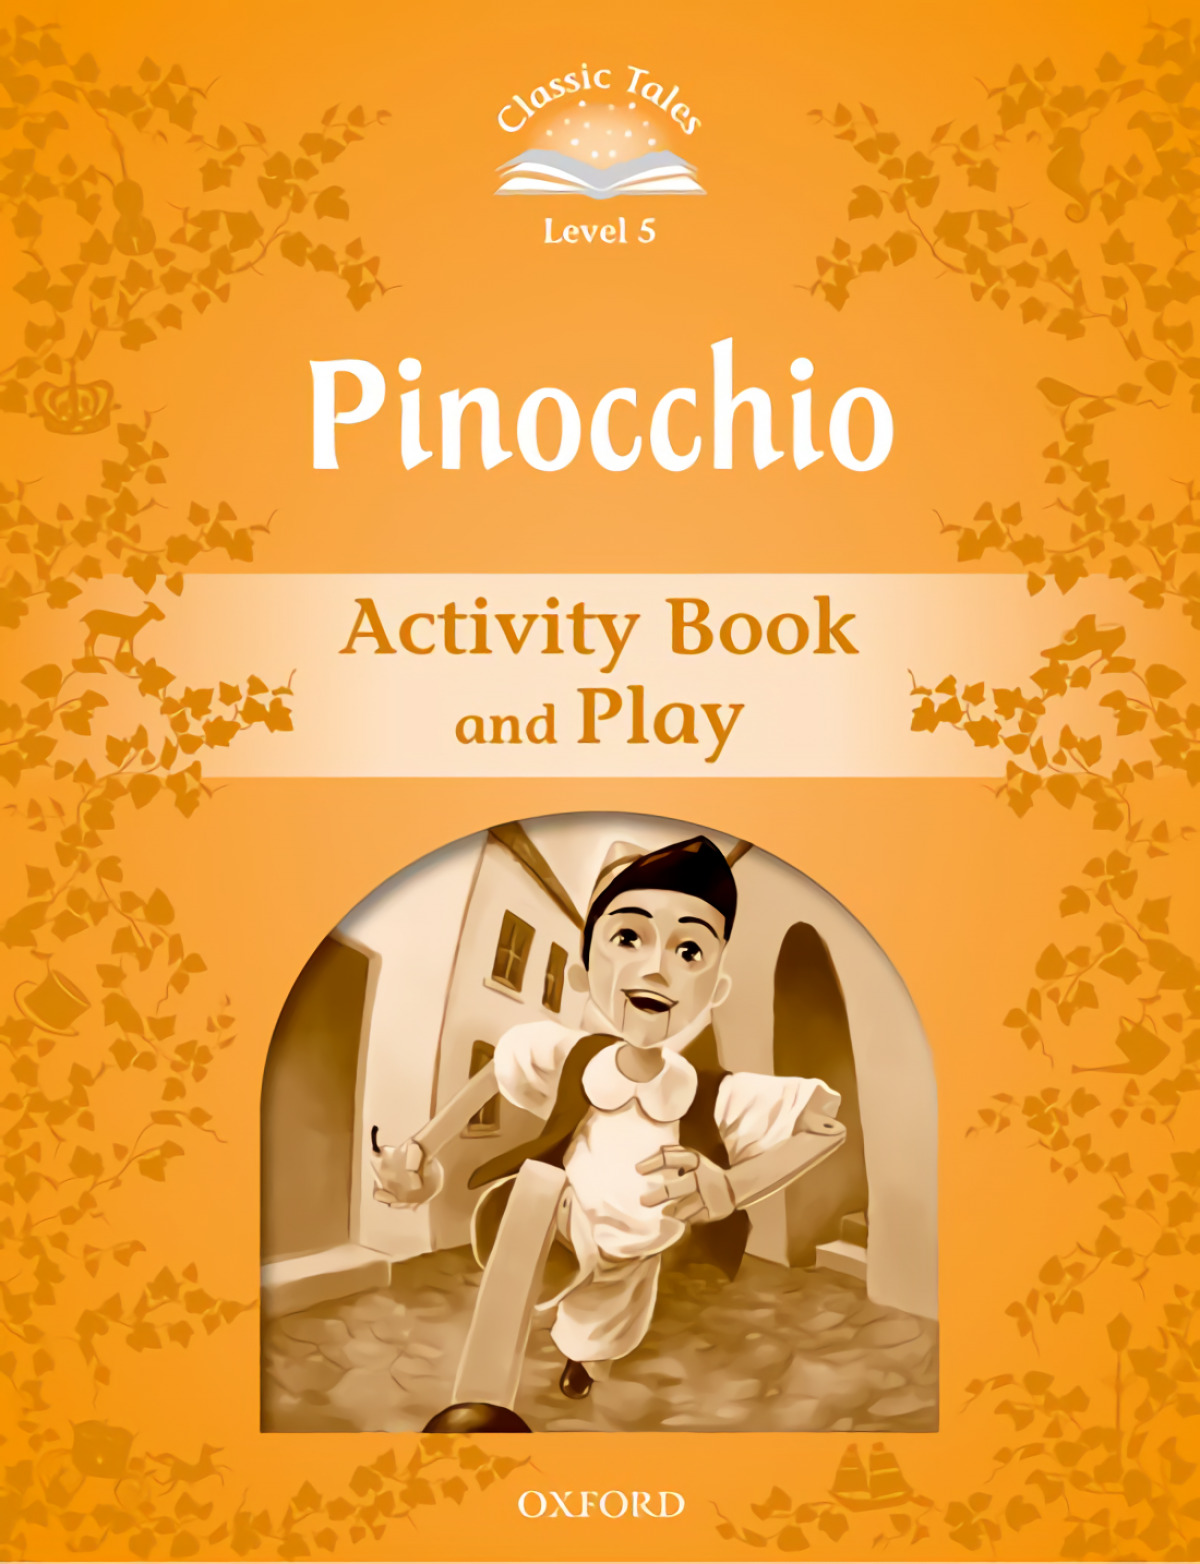 Classic Tales Level 5. Pinocchio: Activity Book 2nd Edition - Arengo, Sue